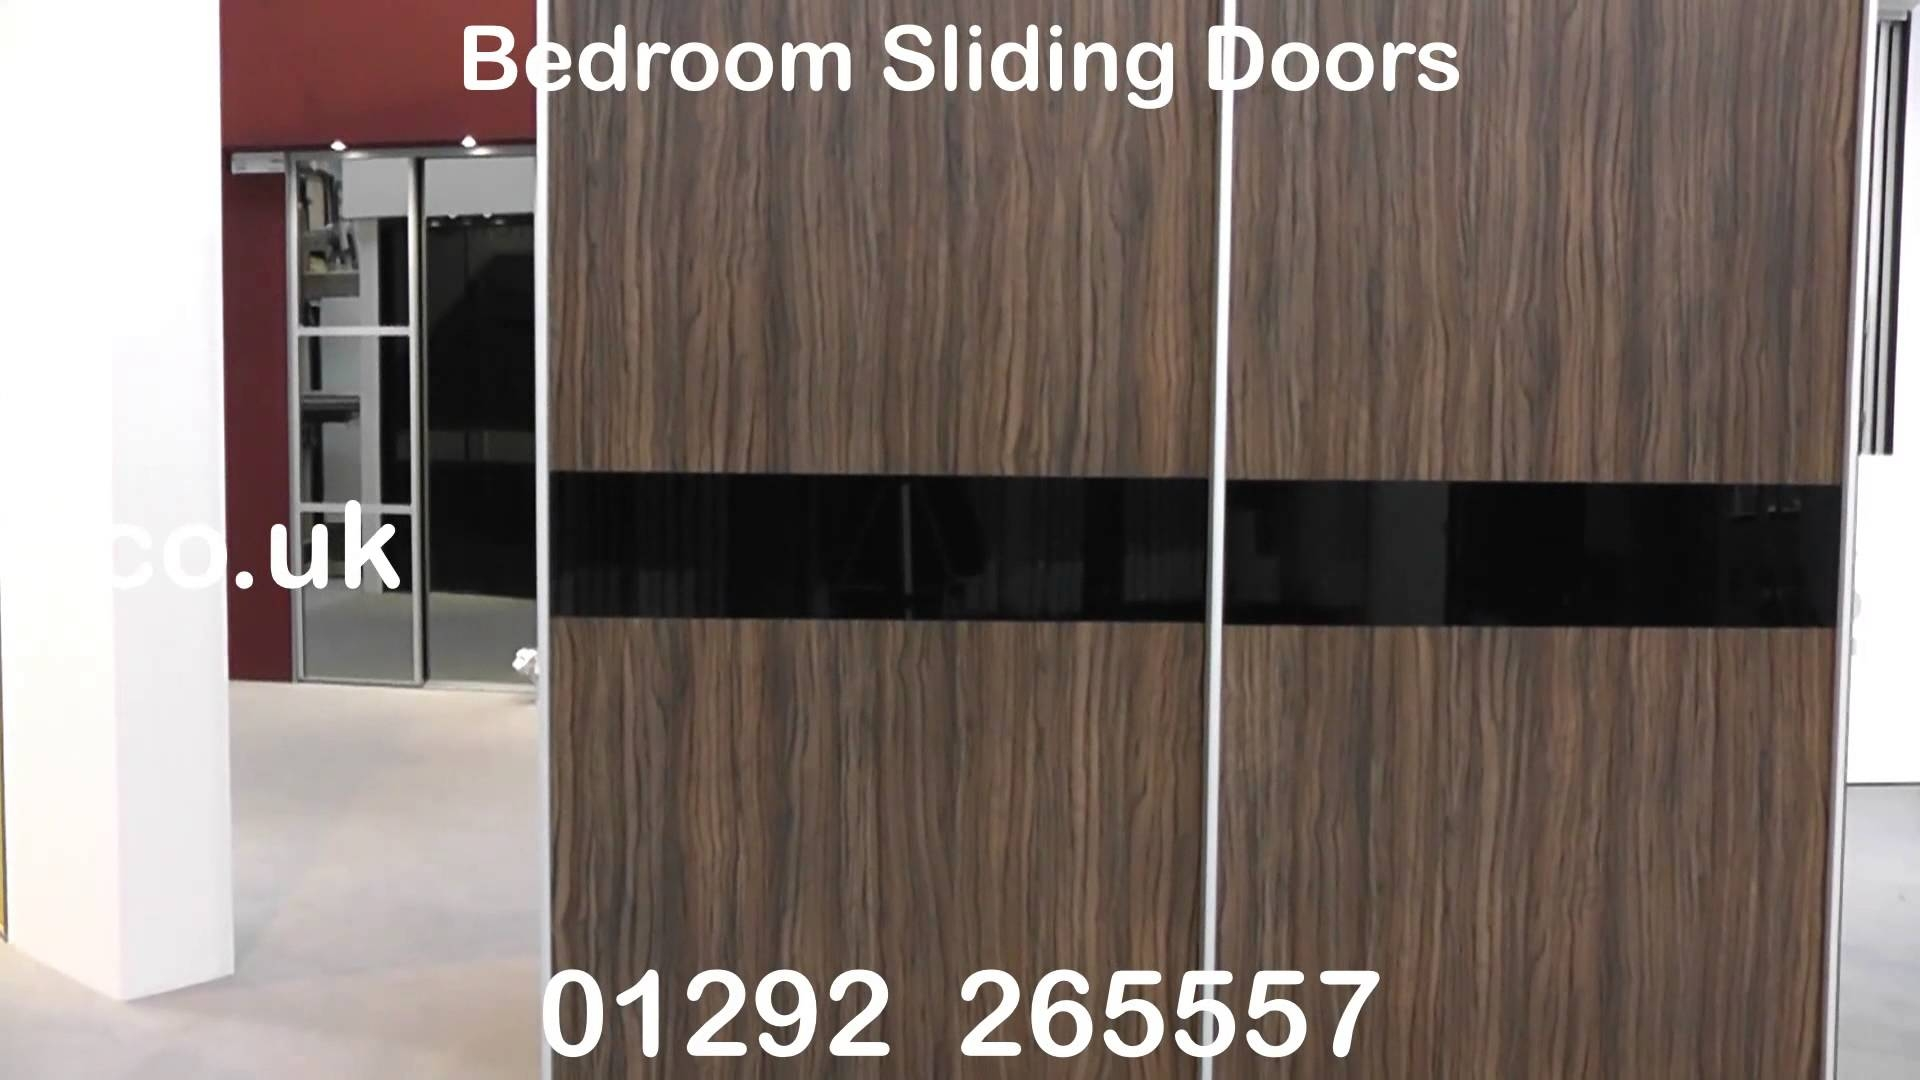 Bedroom Sliding Doors And Sliding Bedroom Doors And Slide Doors In Cupboard Sliding Doors (Image 4 of 25)